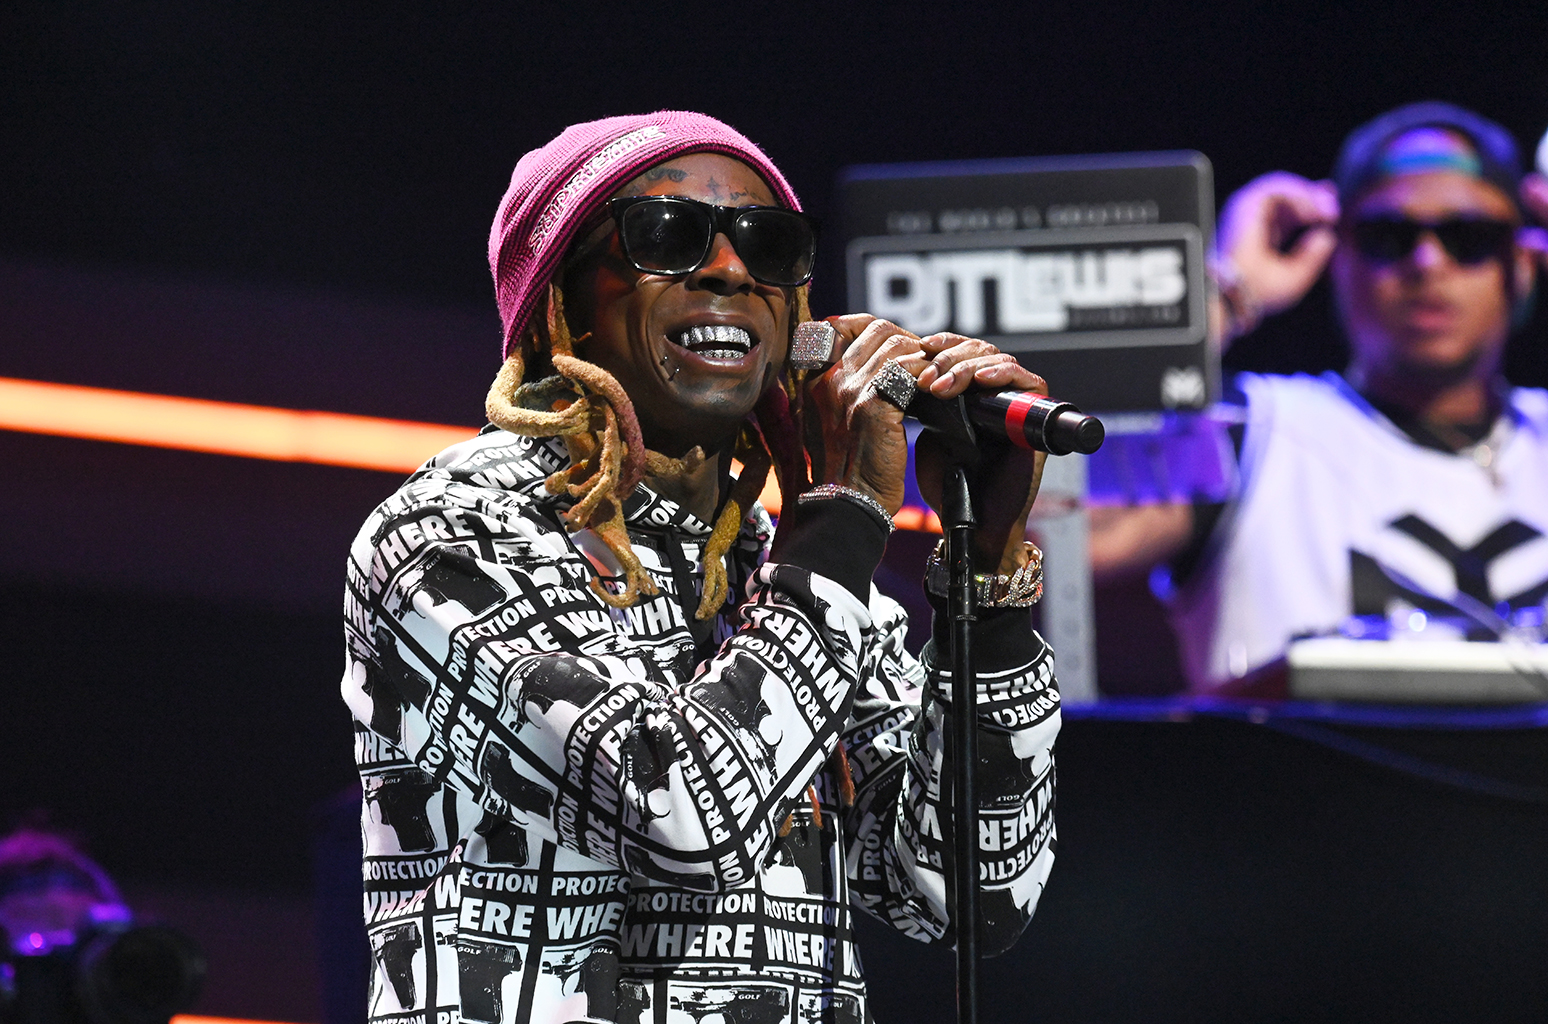 Lil Wayne Successfully Completes Series With Tha Carter V Album